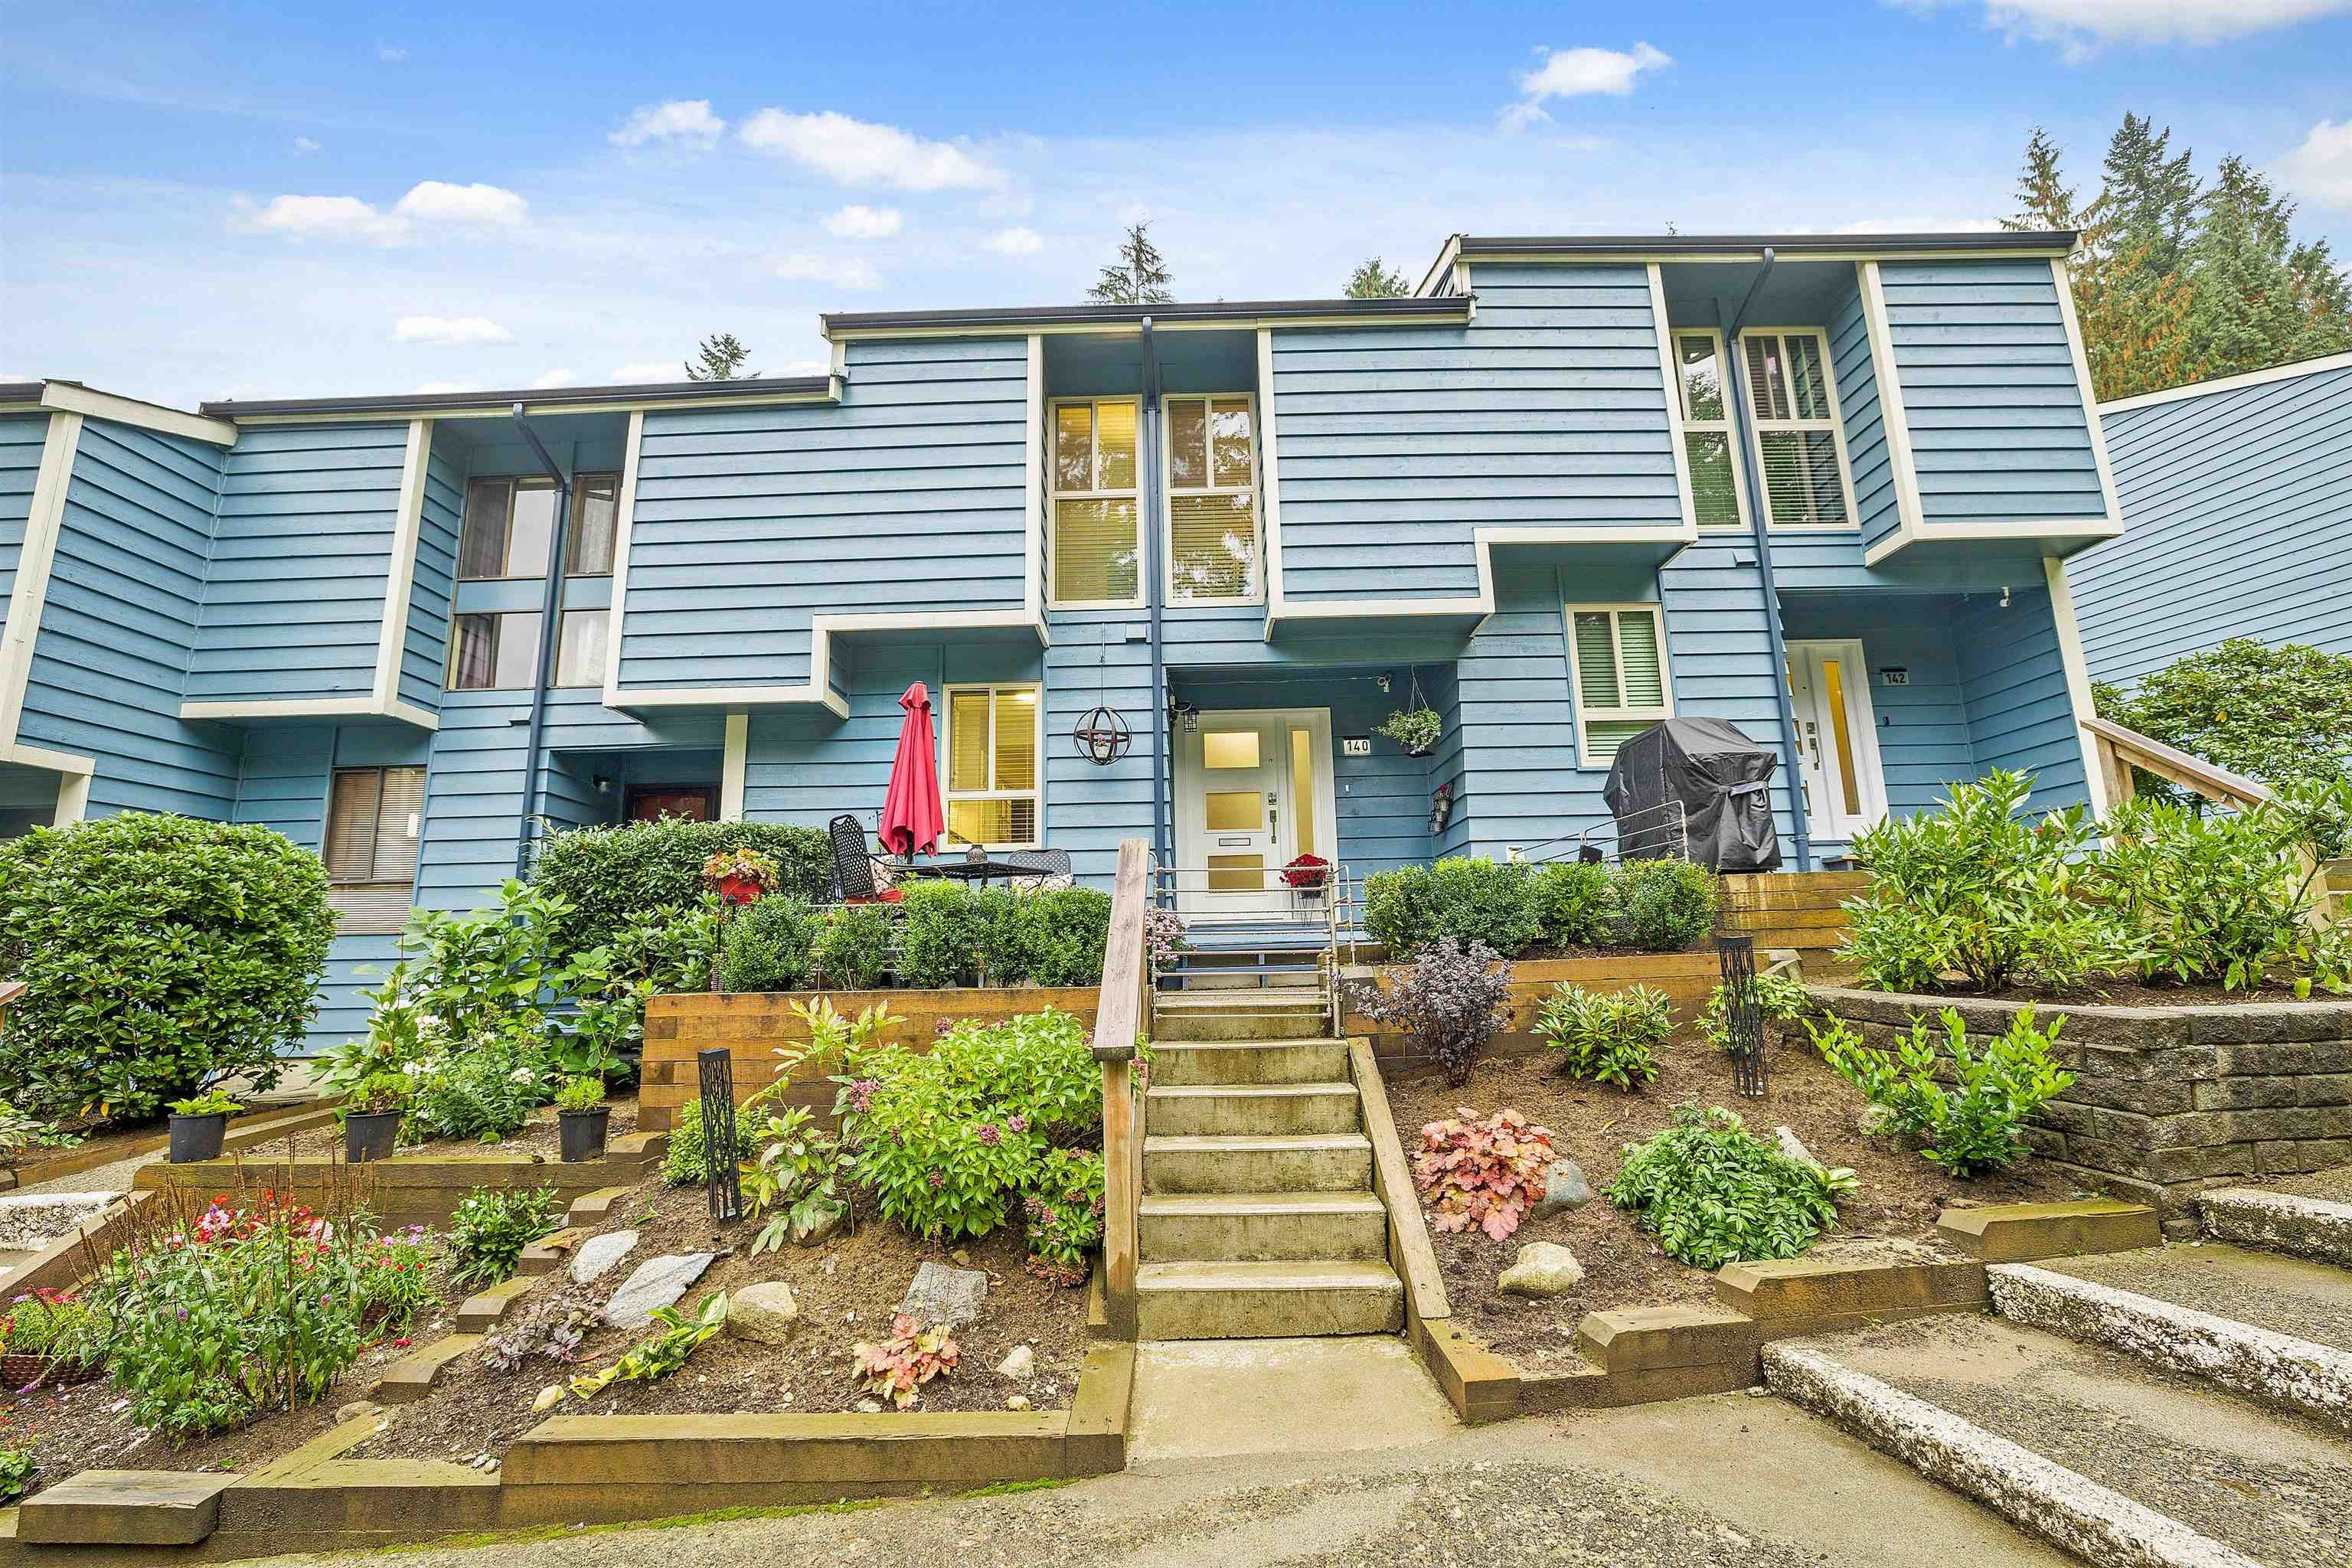 """Main Photo: 140 BROOKSIDE Drive in Port Moody: Port Moody Centre Townhouse for sale in """"BROOKSIDE ESTATES"""" : MLS®# R2623778"""